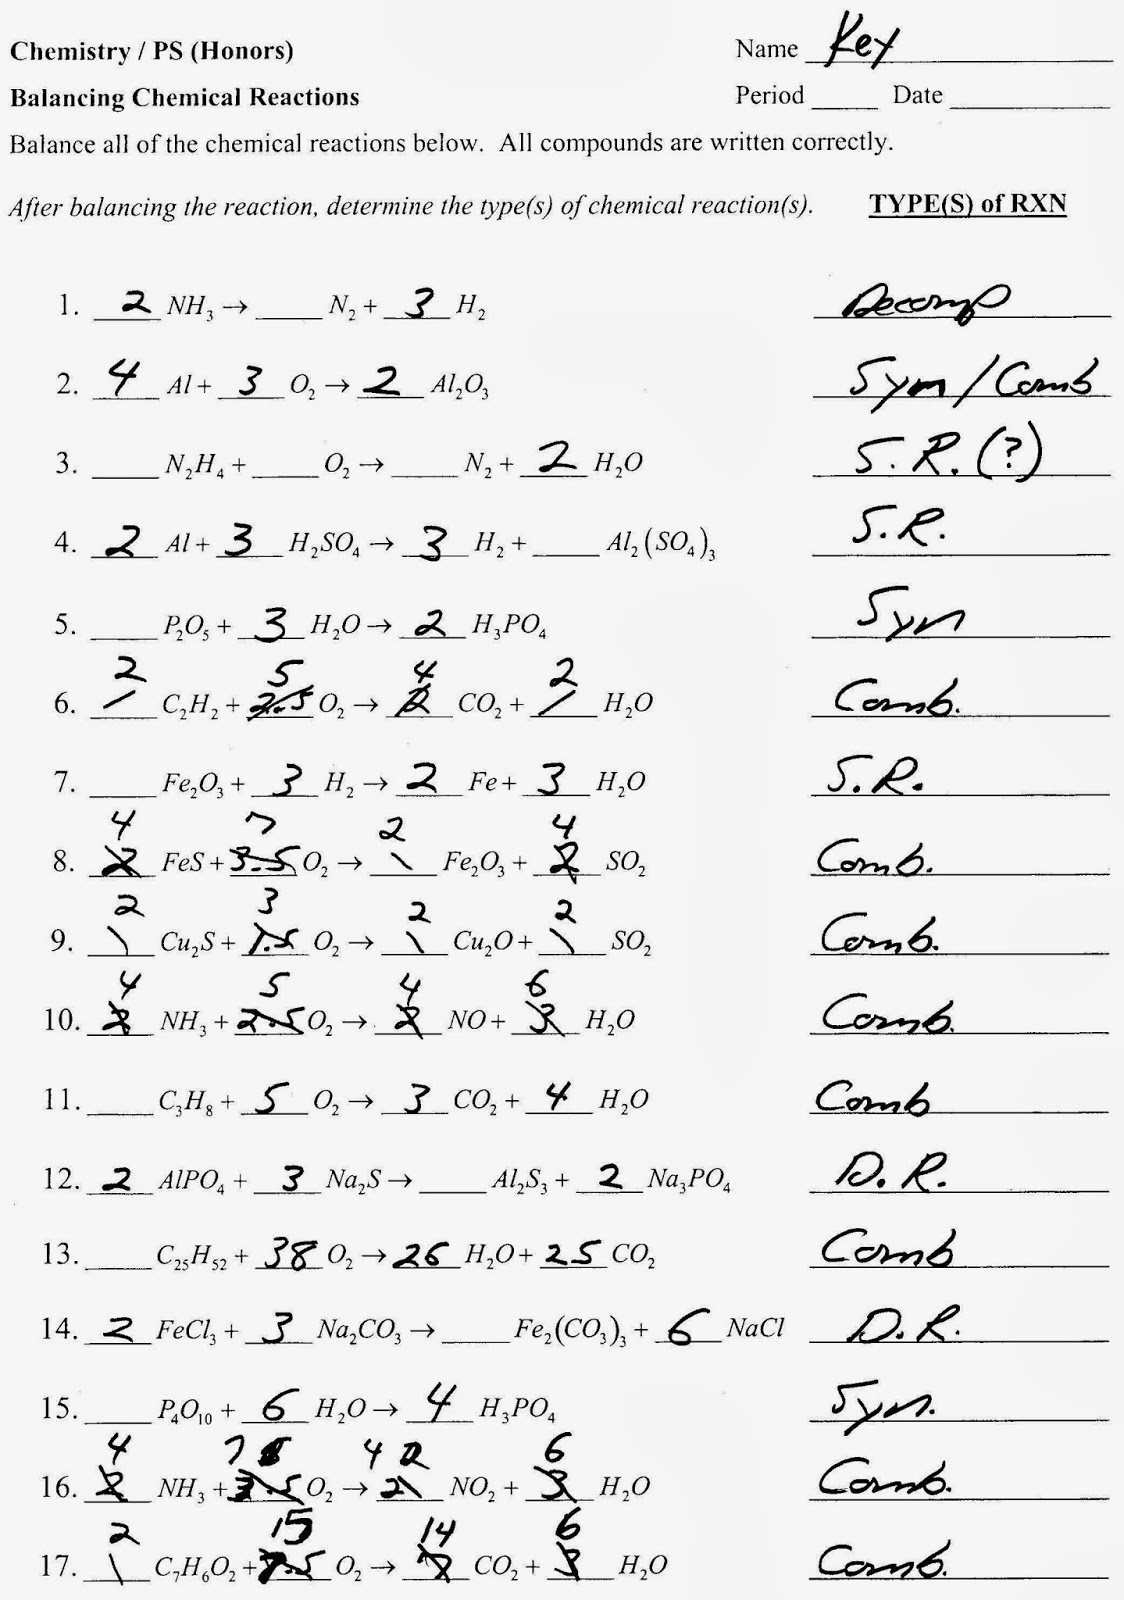 Aldiablosus  Pleasant Balancing Chemical Equations Worksheets Balancing Chemical  With Goodlooking Balancing Chemical Equations Worksheet Answer Key On Chemistry Double With Easy On The Eye Crack The Code Worksheets Also Teacher Worksheets Free In Addition Common Core Math Worksheets Th Grade And Free Punctuation Worksheets As Well As Math Worksheets For Third Grade Additionally How To Budget Money Worksheet From Letstalkhiphopus With Aldiablosus  Goodlooking Balancing Chemical Equations Worksheets Balancing Chemical  With Easy On The Eye Balancing Chemical Equations Worksheet Answer Key On Chemistry Double And Pleasant Crack The Code Worksheets Also Teacher Worksheets Free In Addition Common Core Math Worksheets Th Grade From Letstalkhiphopus